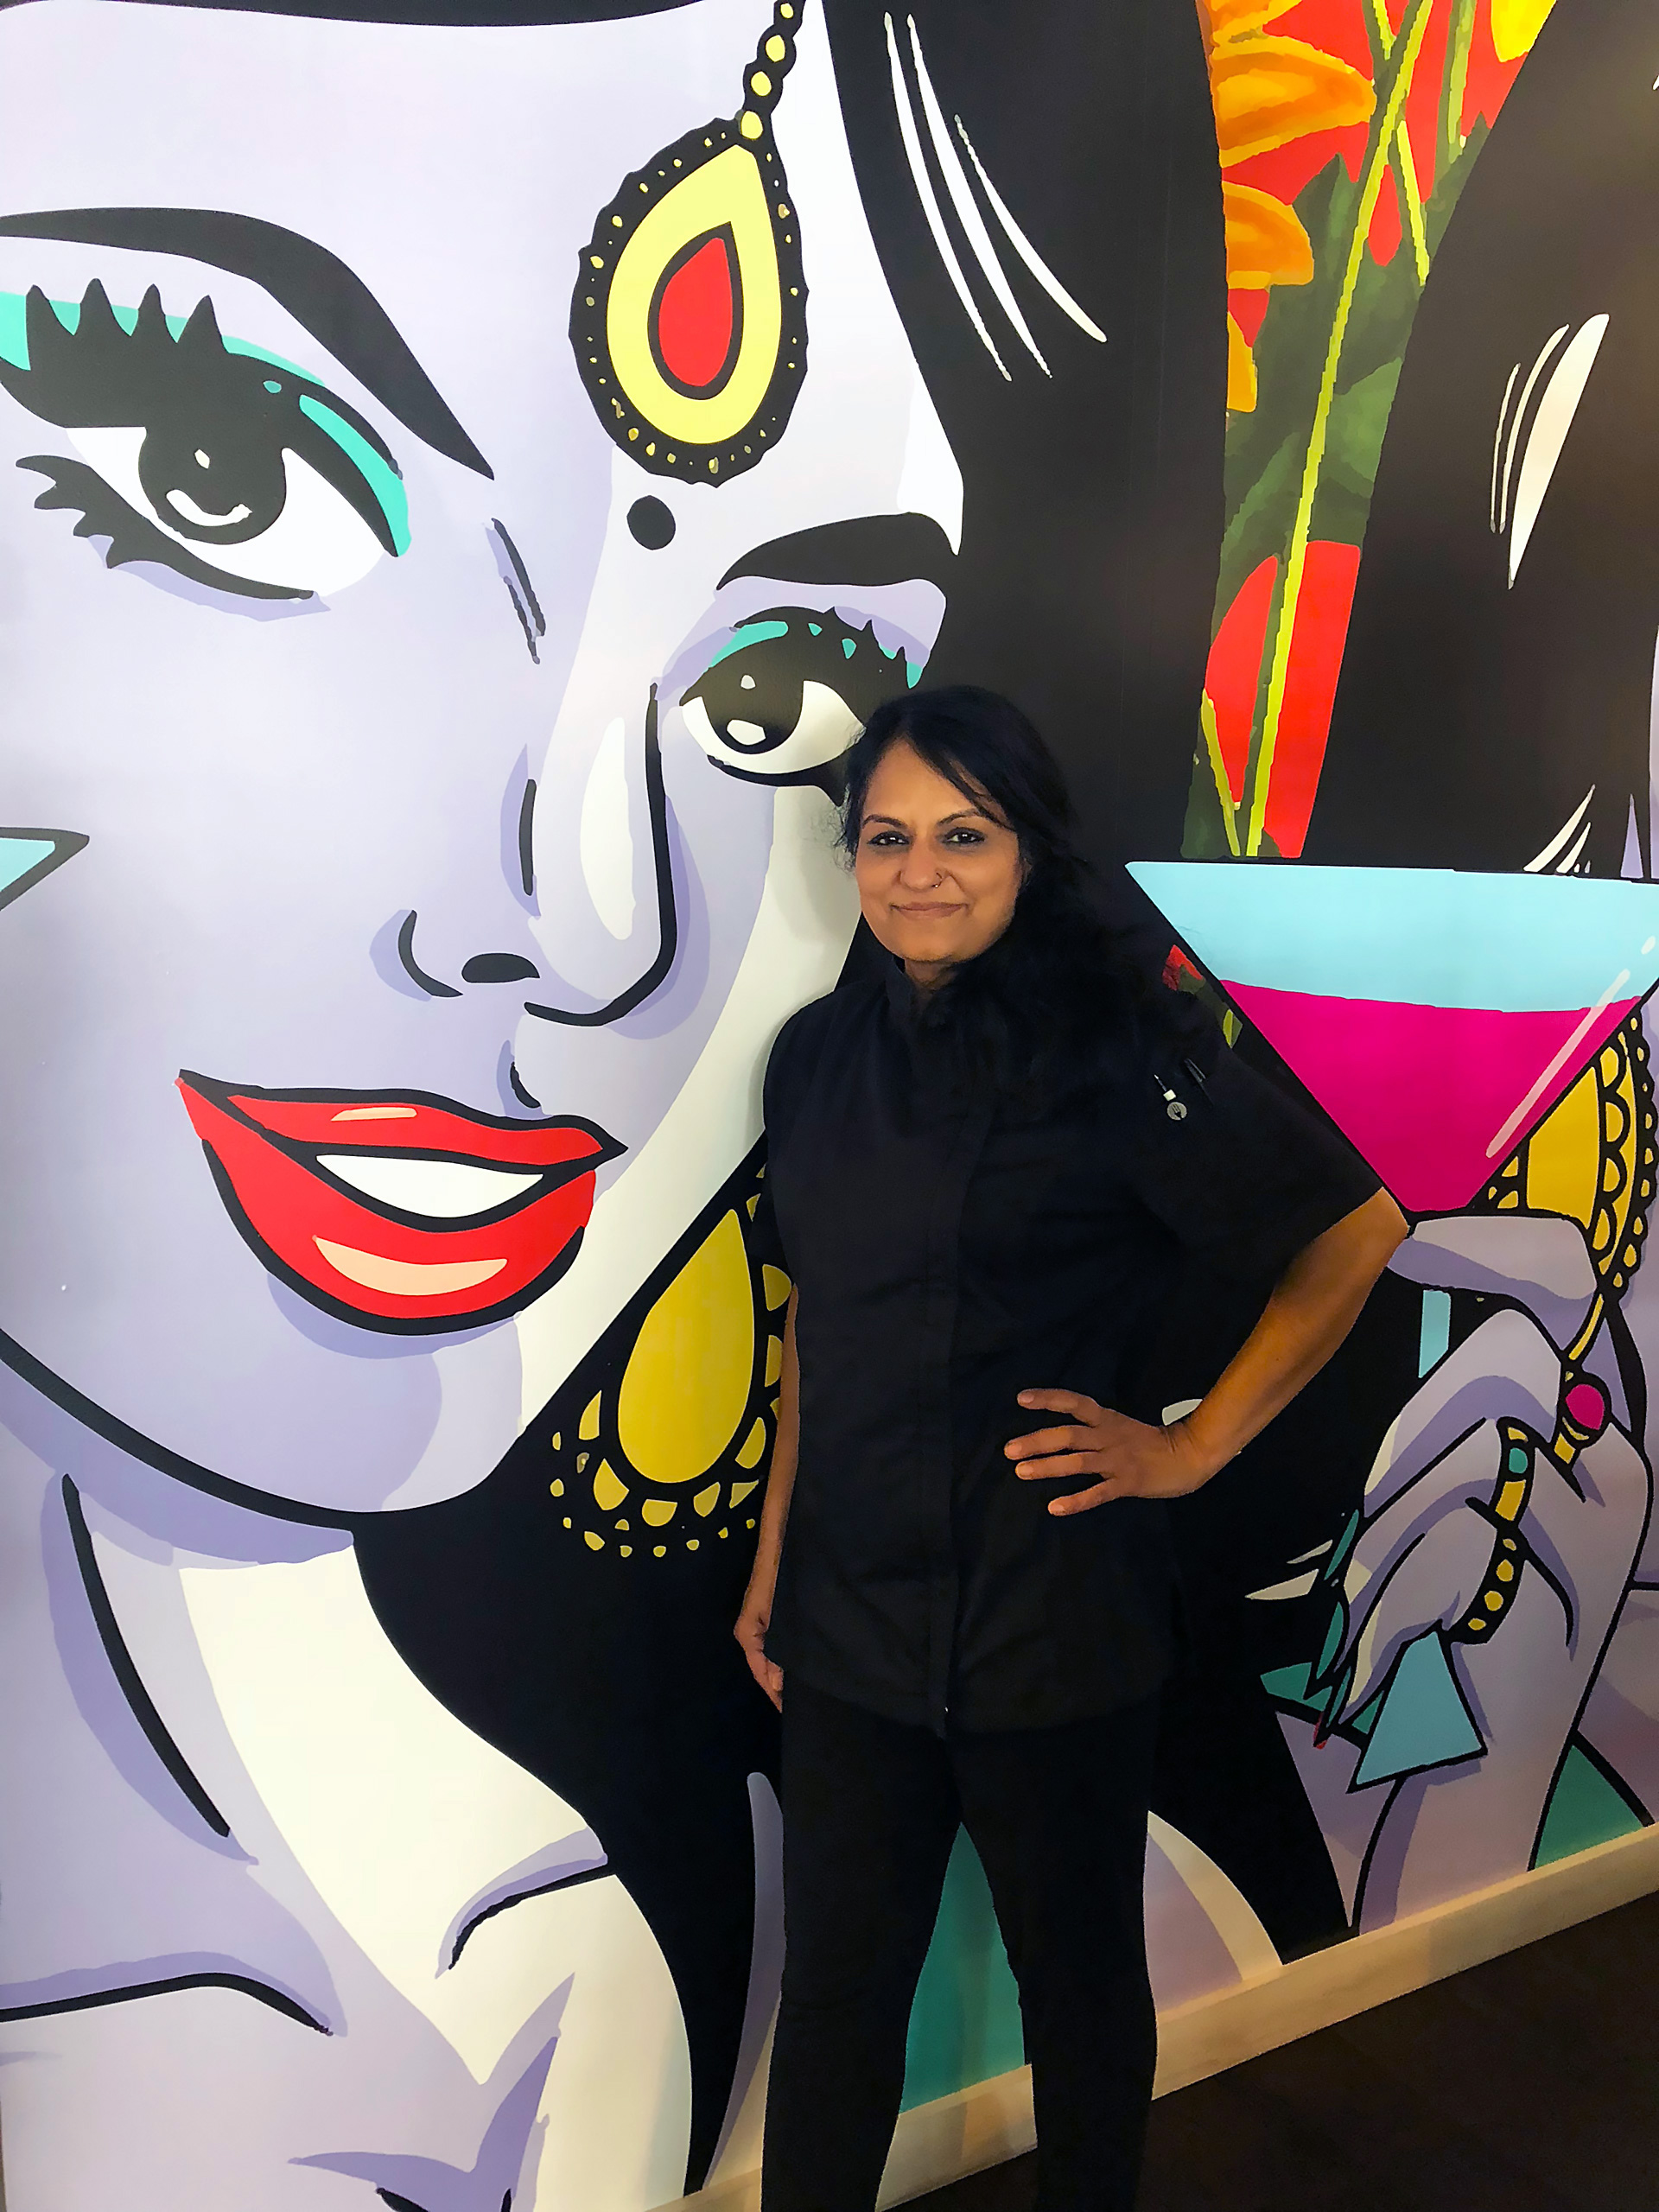 Chef and Partner Heena Patel in front of pop-art mural by HateCopy's Maria Qamar